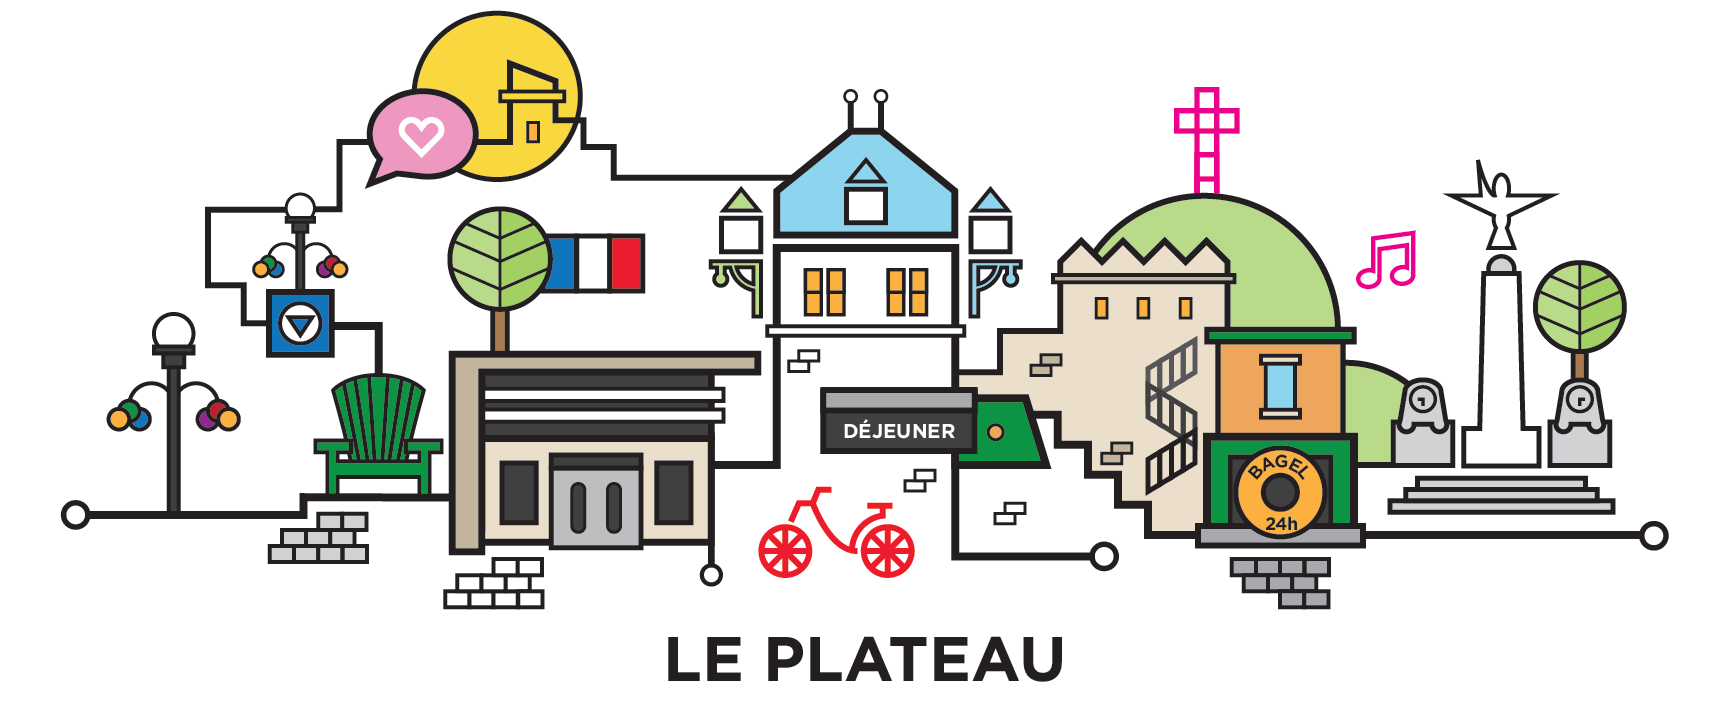 mtl-plateau-cityline-illustration-by-loogart